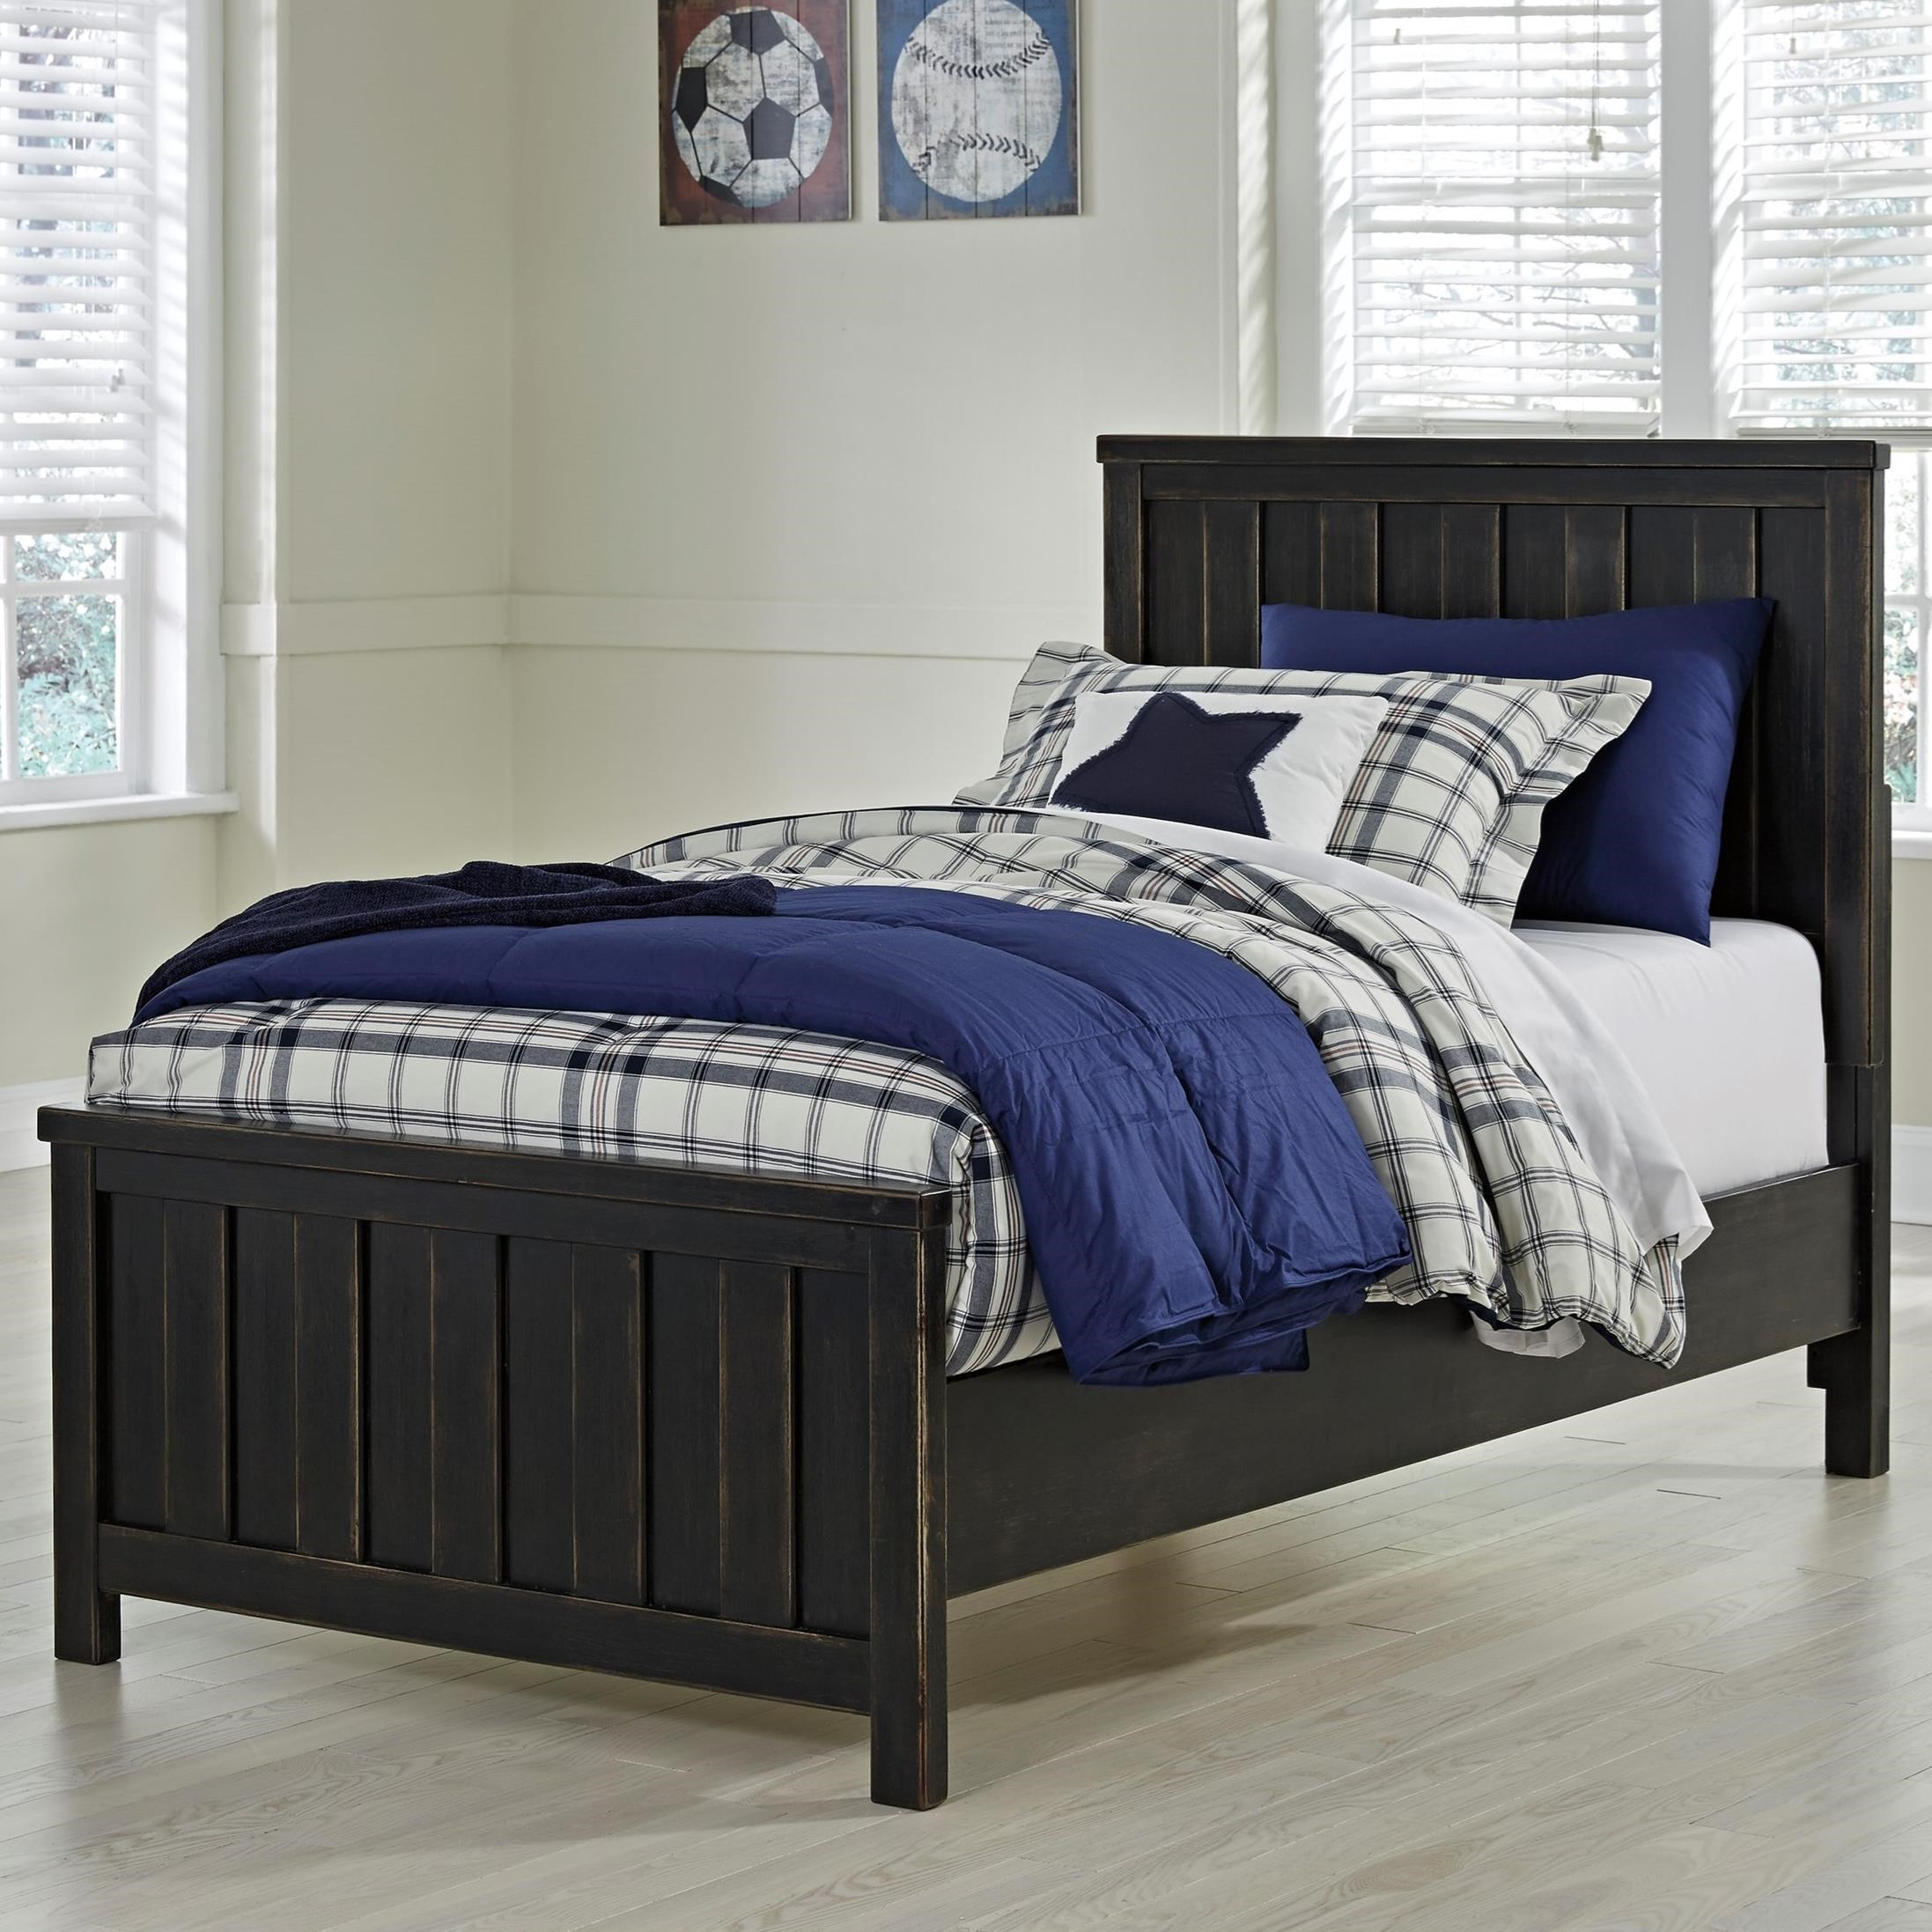 Signature Design By Ashley Jaysom Twin Panel Bed In Rub Through Black Finish Del Sol Furniture